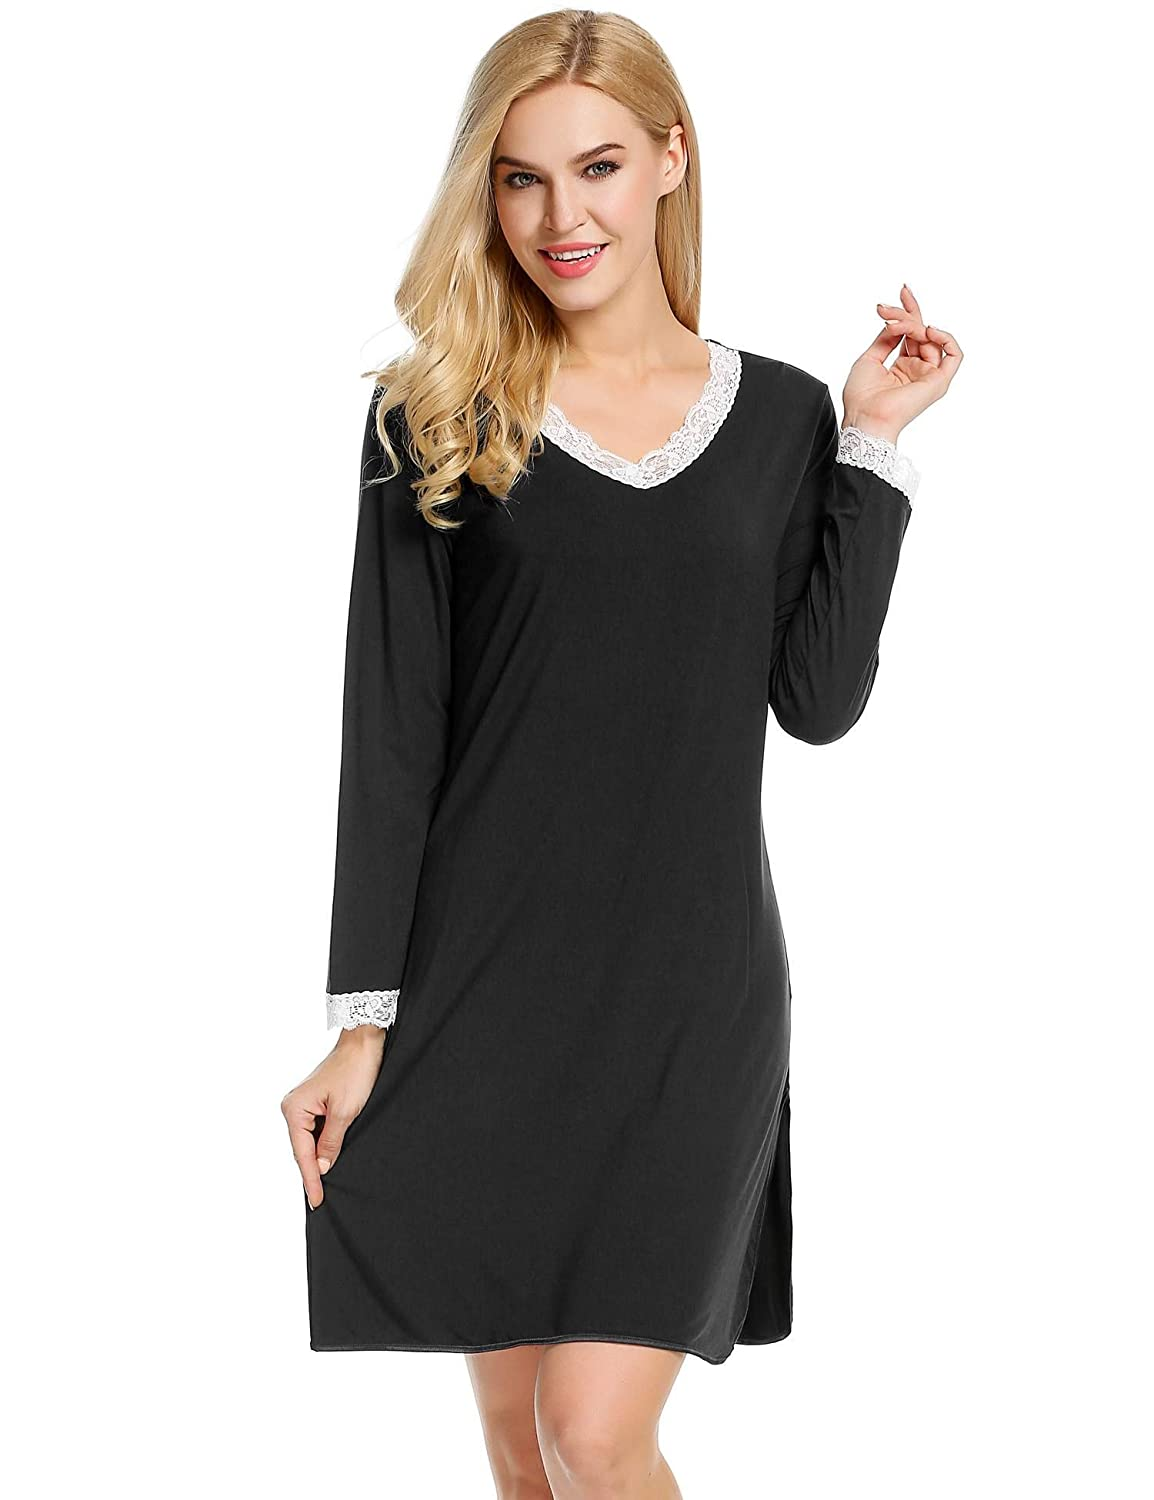 Ekouaer Women's Nightshirts Viscose Chemises Slip Long Nightgown Sleepwear S-XXL XL) EKK005061_B_XL#